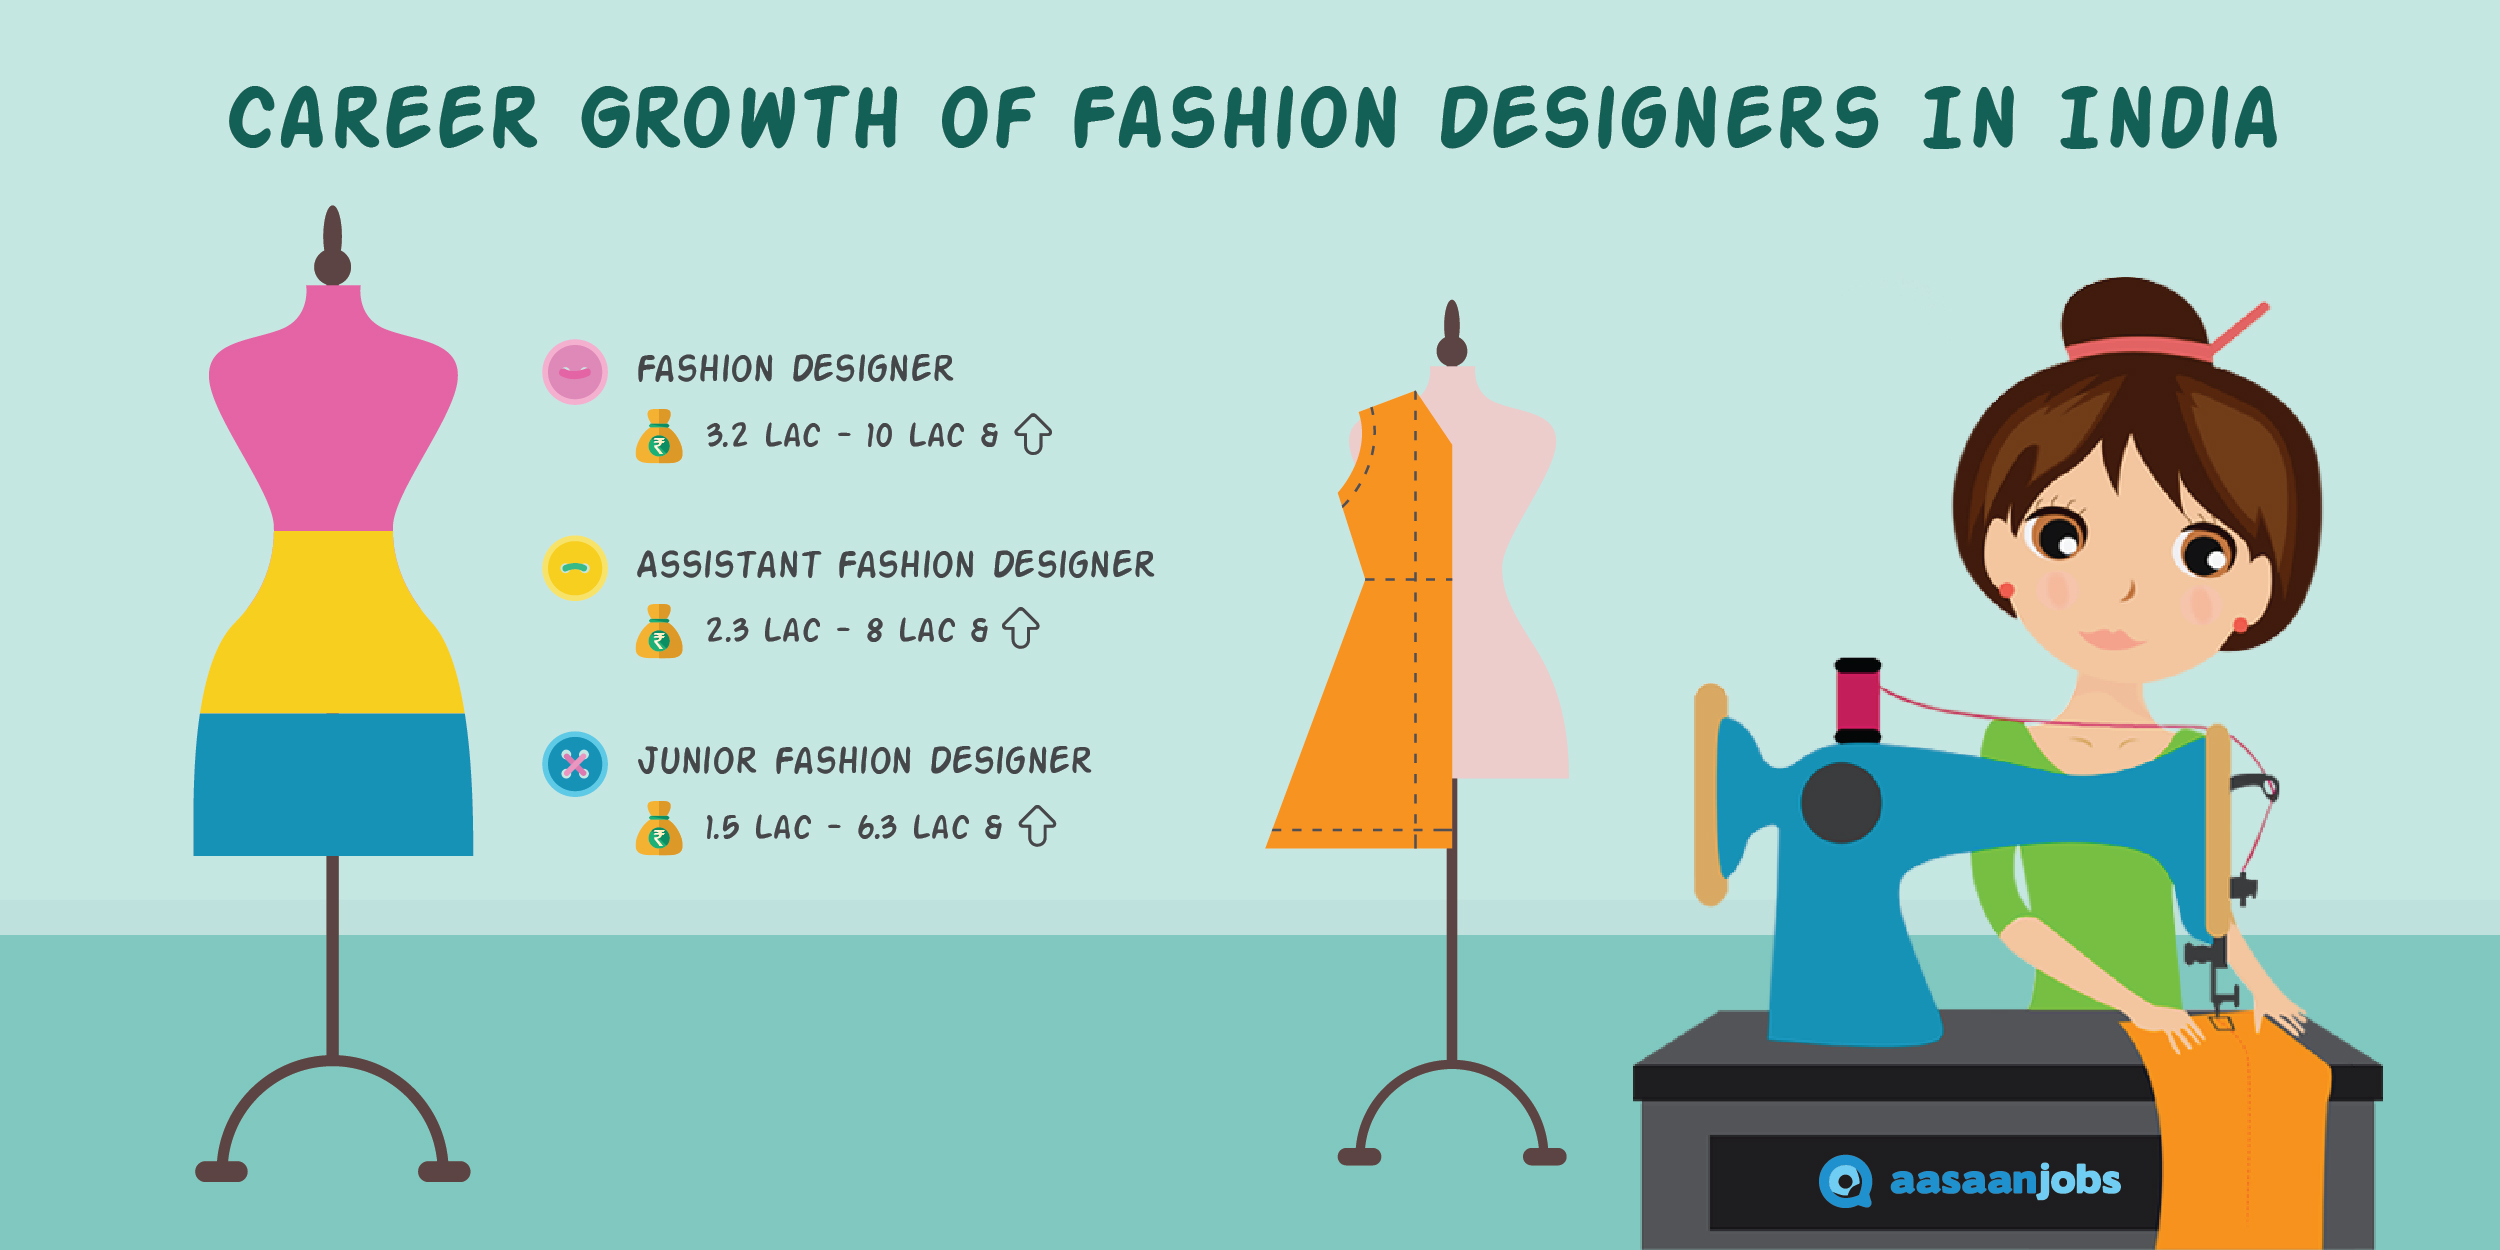 Opportunities For Fashion Designers